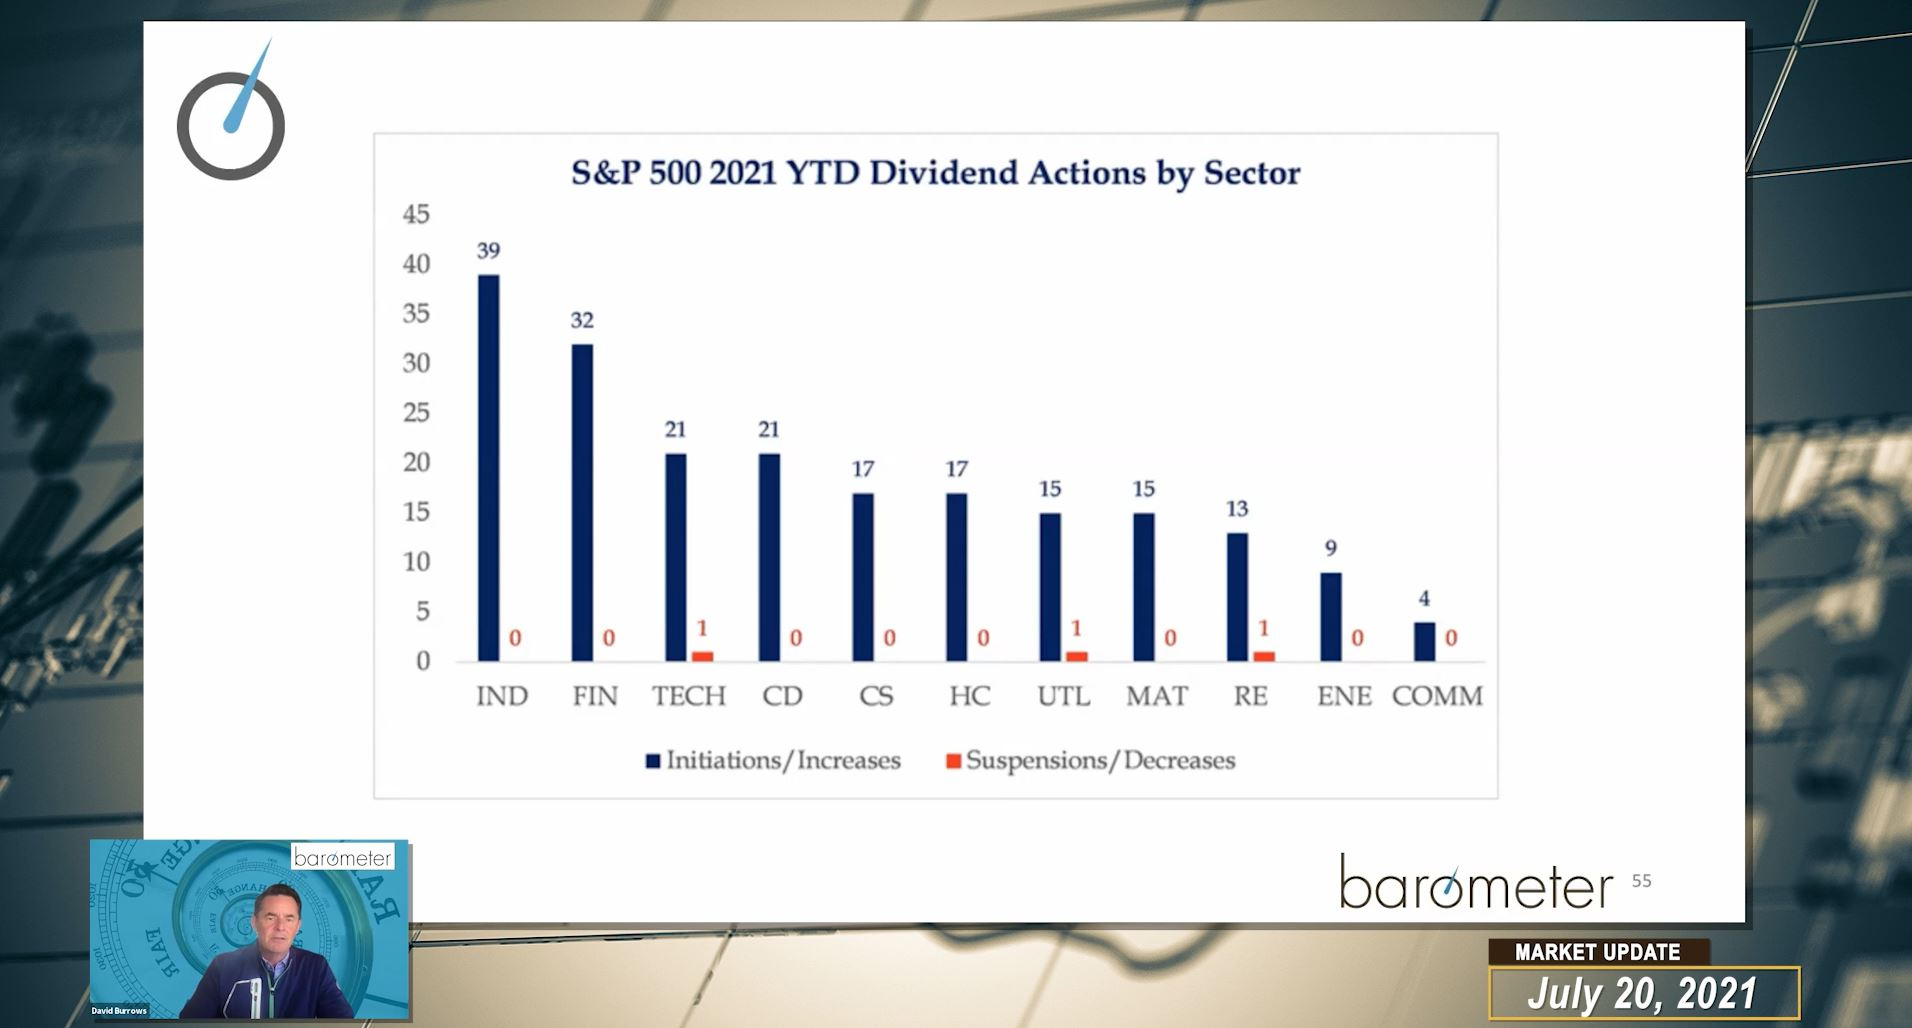 Weekly Barometer Readings (Video) – David Burrows And Diana Avigdor Discuss Market Corrections, Q3 Expectation, Portfolio Rebalancing, The Bond Market, And Overall Market Conditions